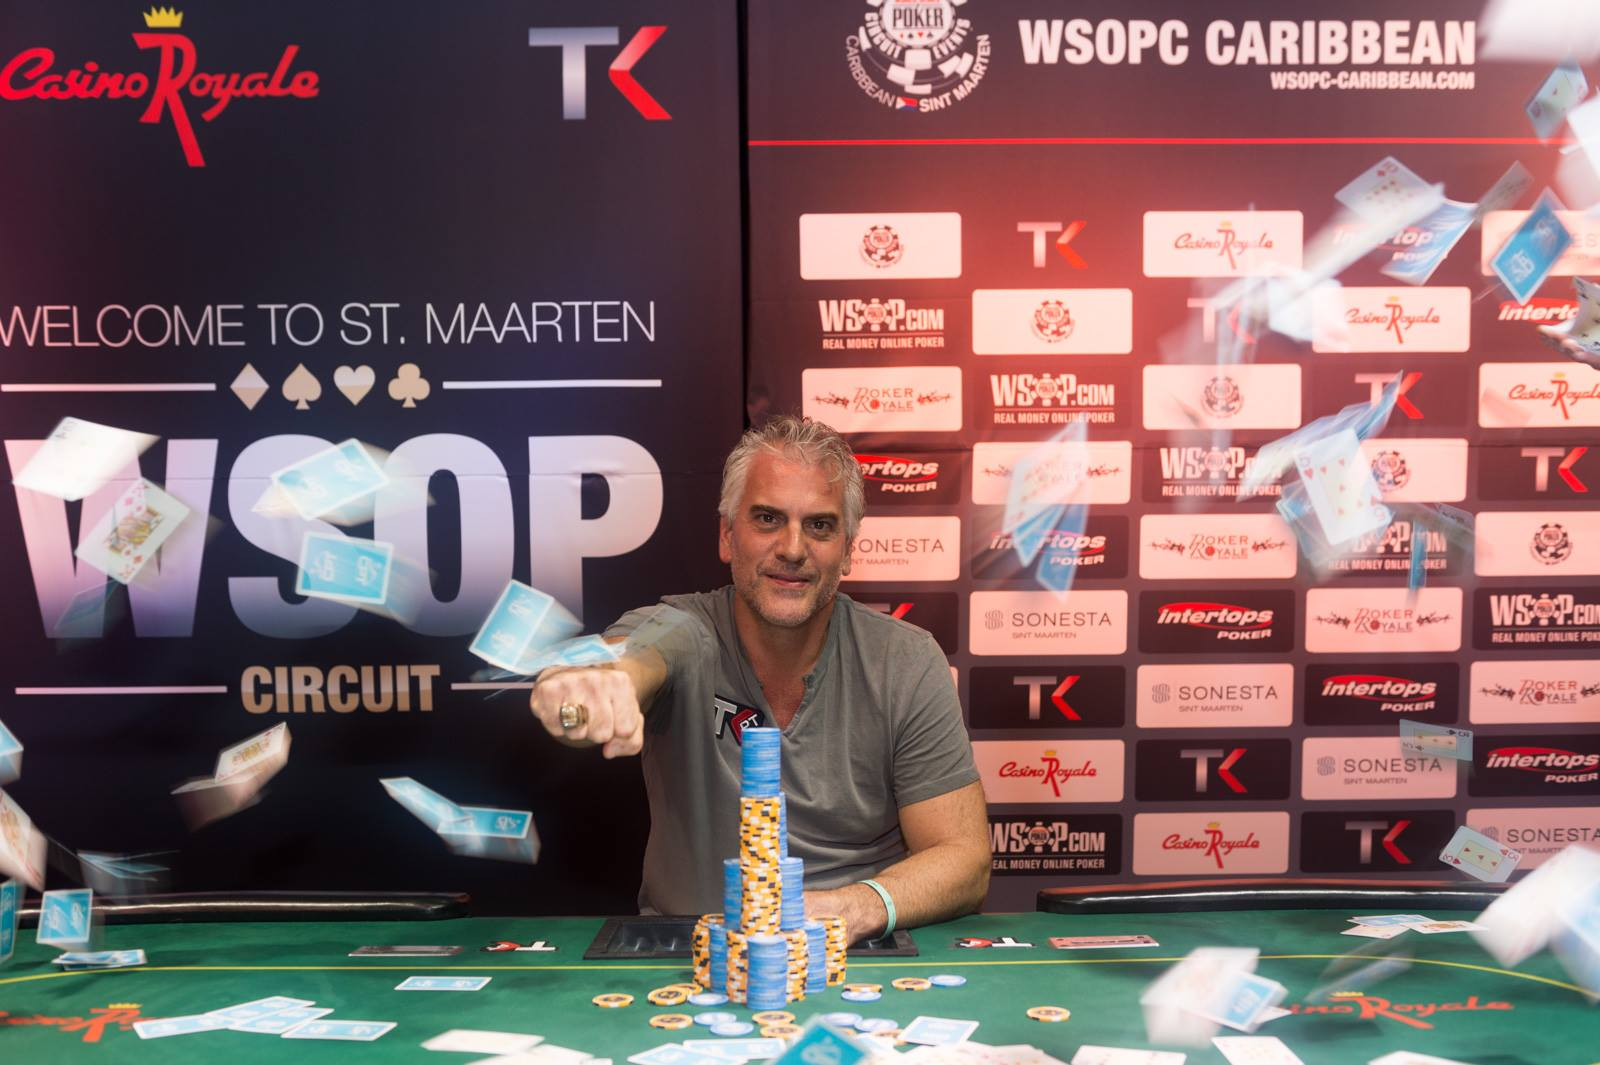 WSOPC Caribbean is back November 1 - 15, 2017